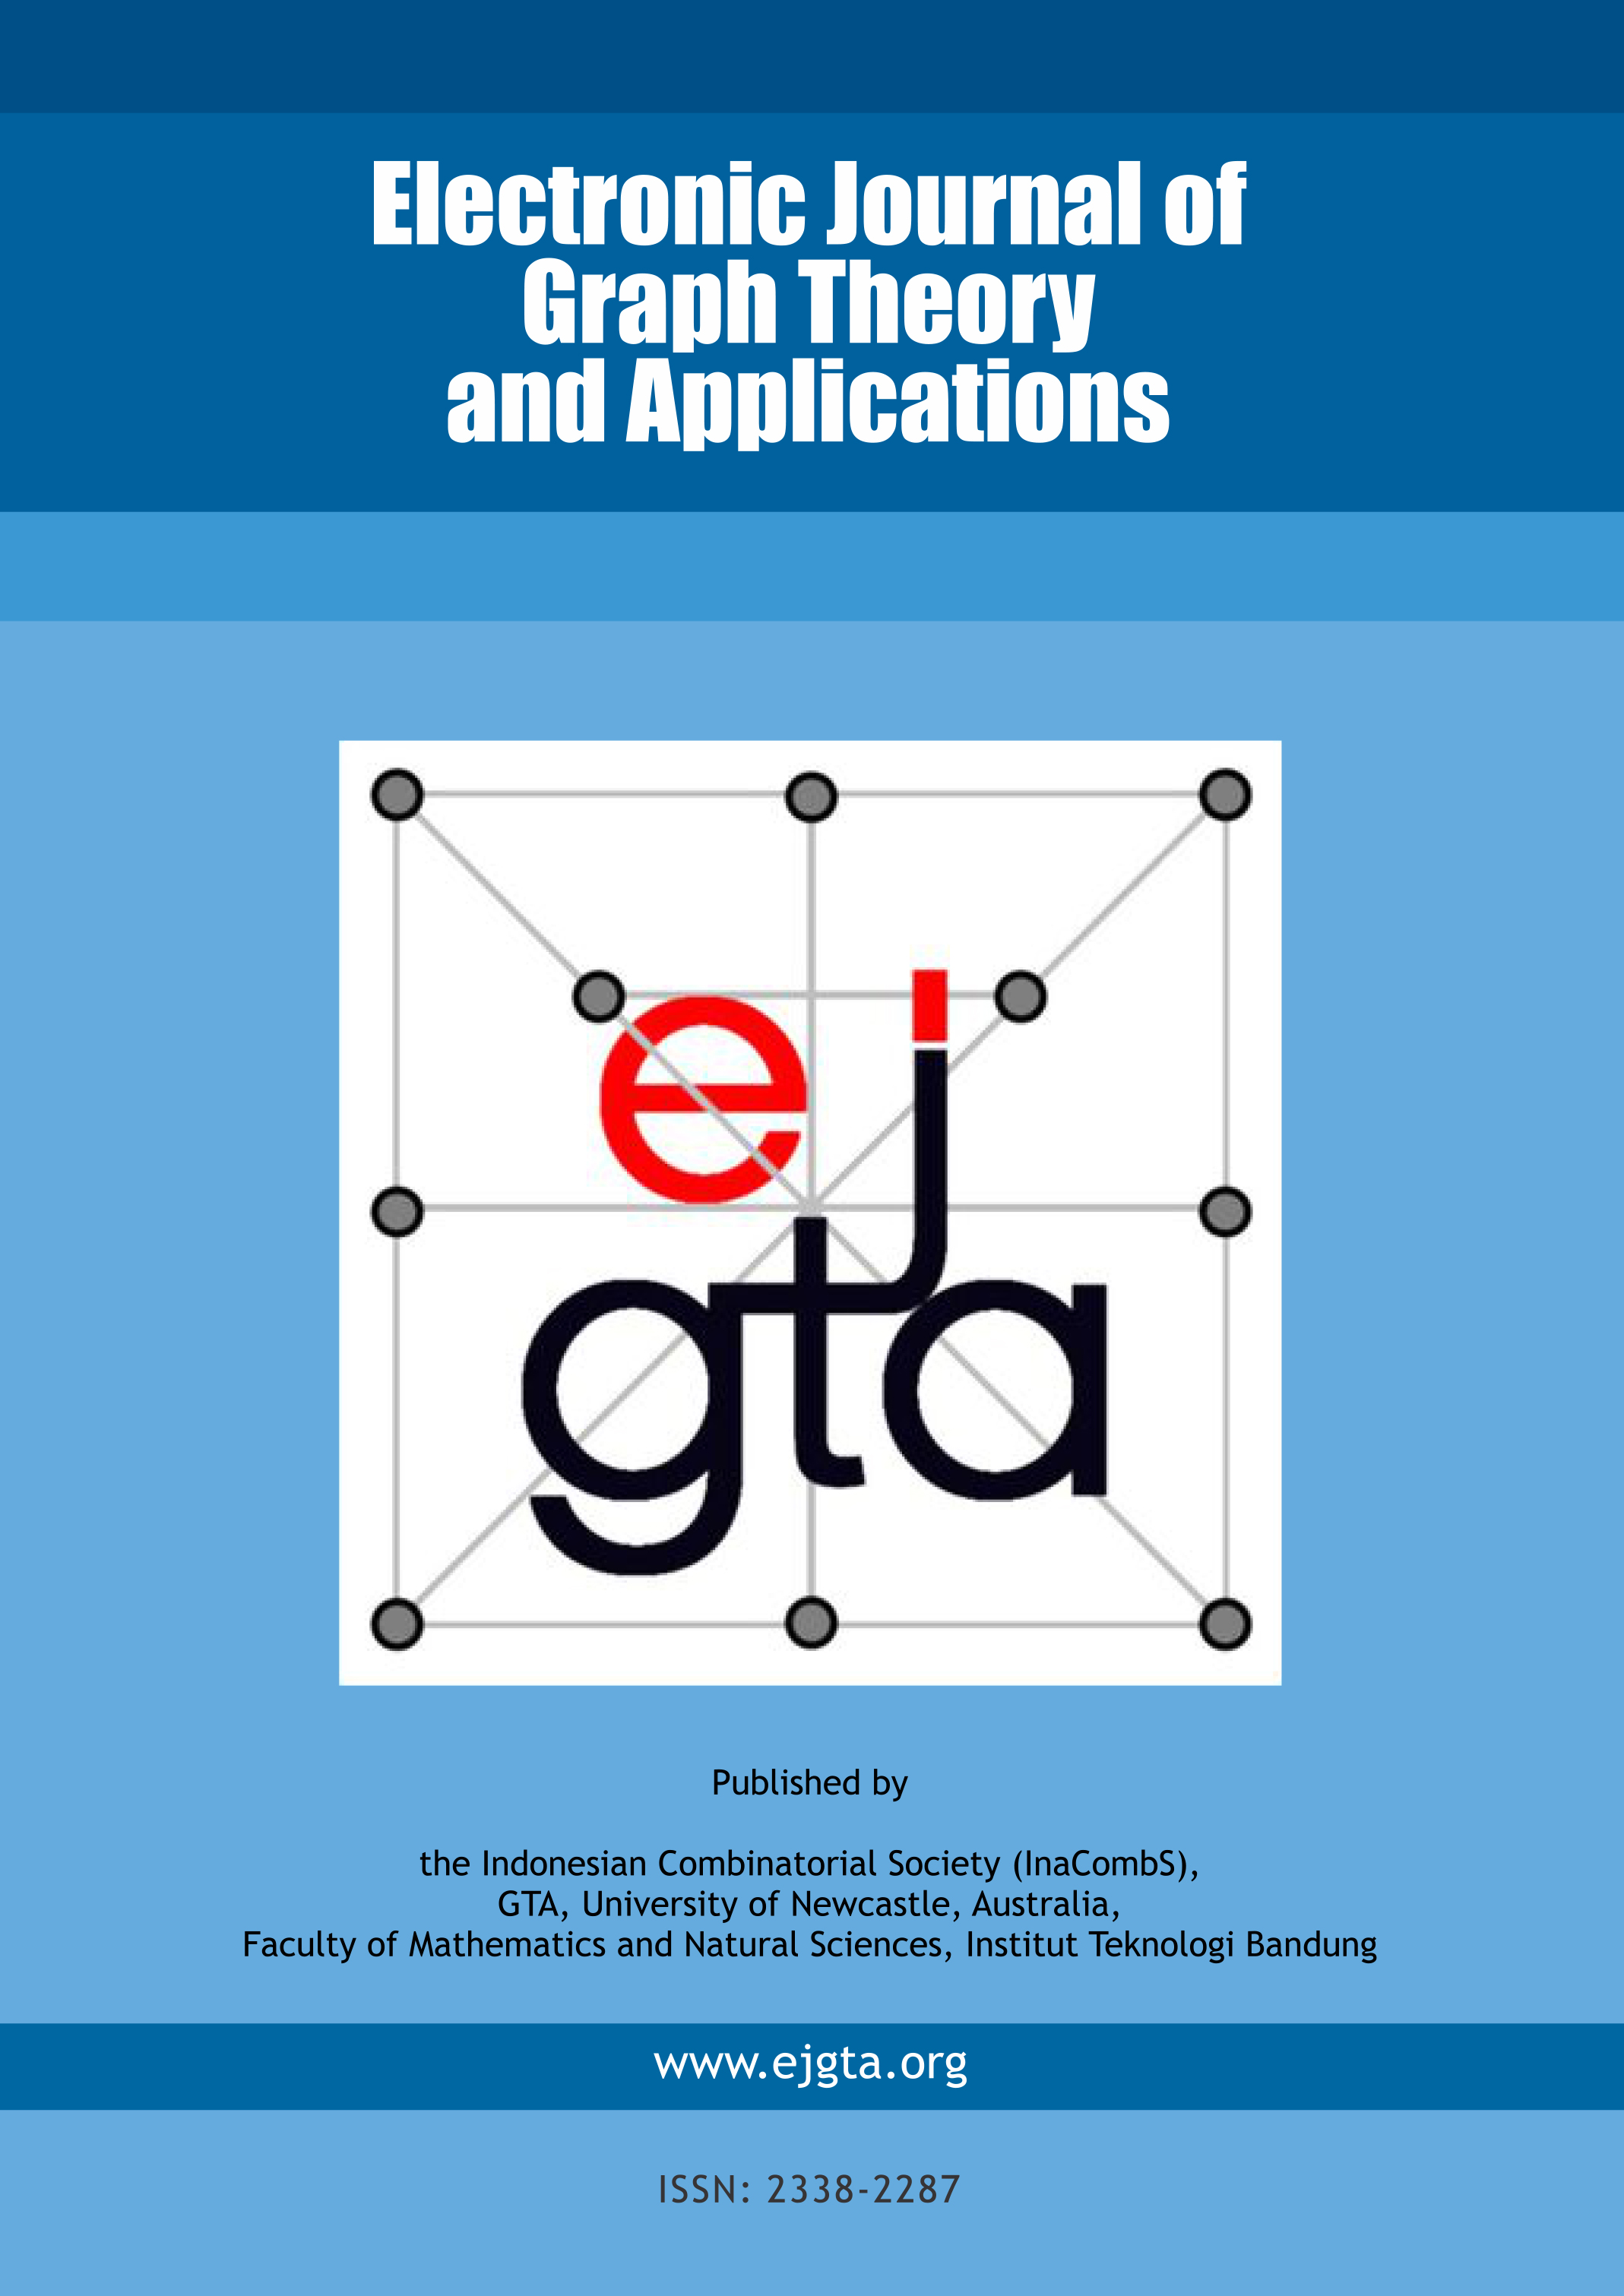 electronic journal of graph theory and applications ejgta